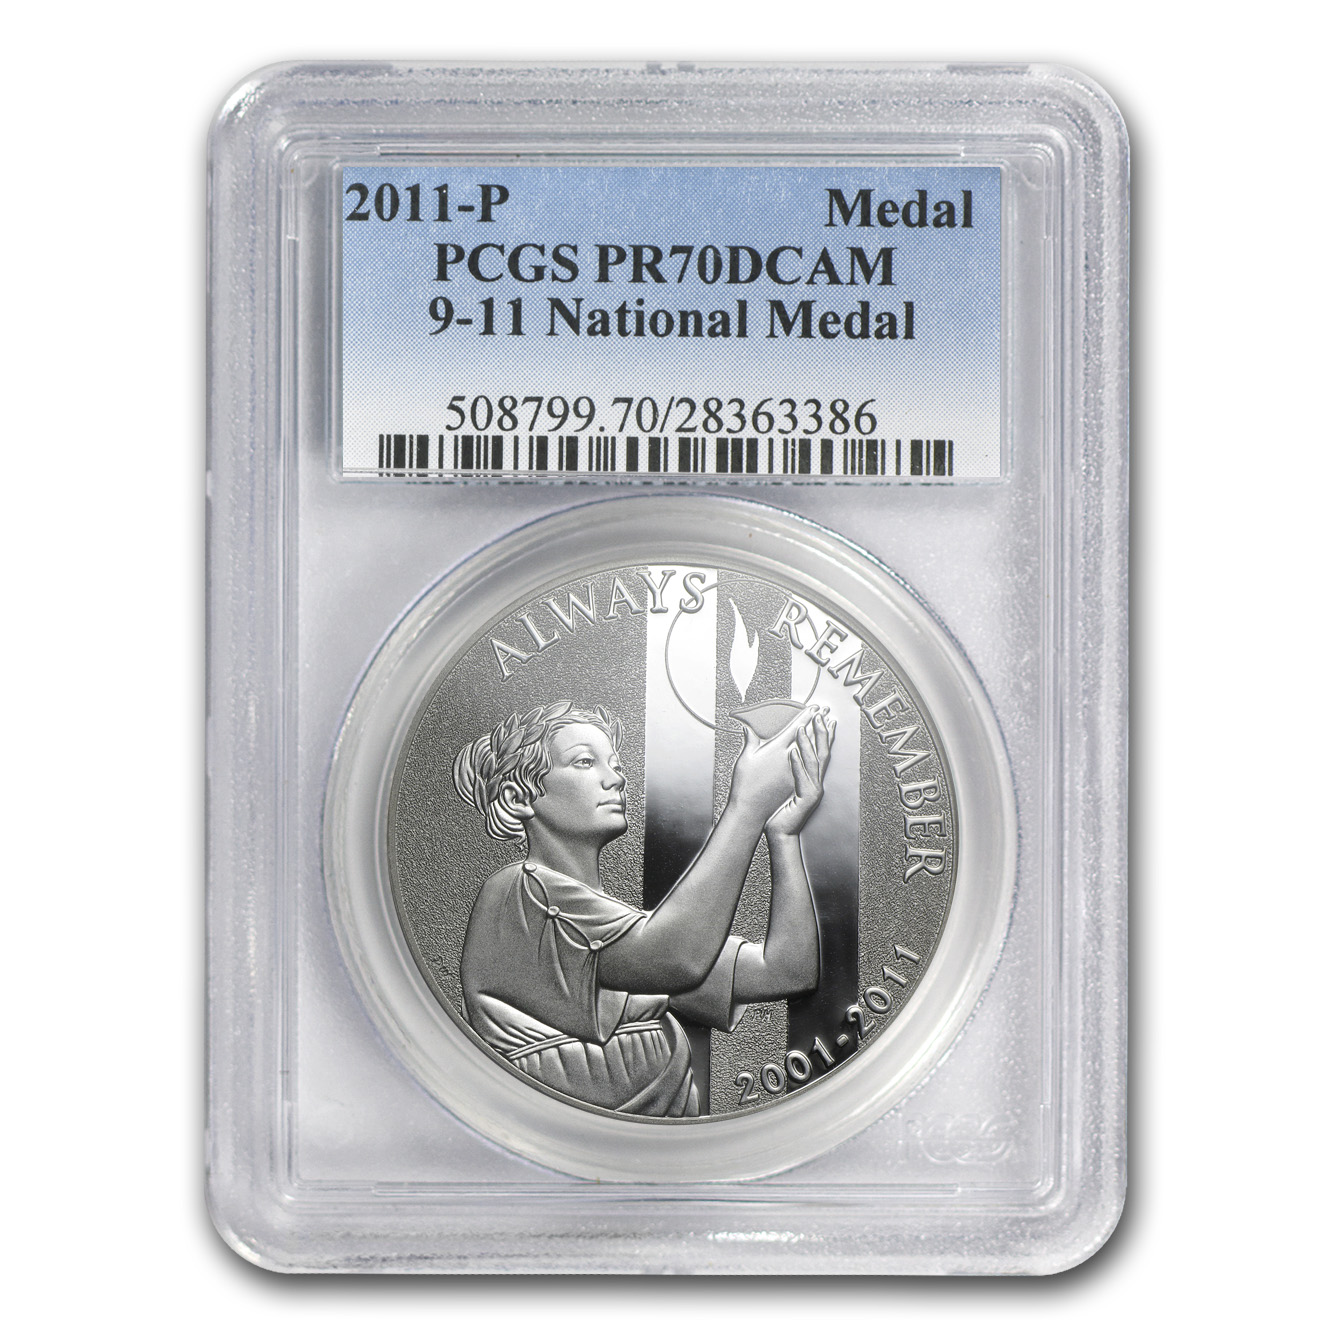 2011-P 9/11 National Medal - PR-70 DCAM PCGS